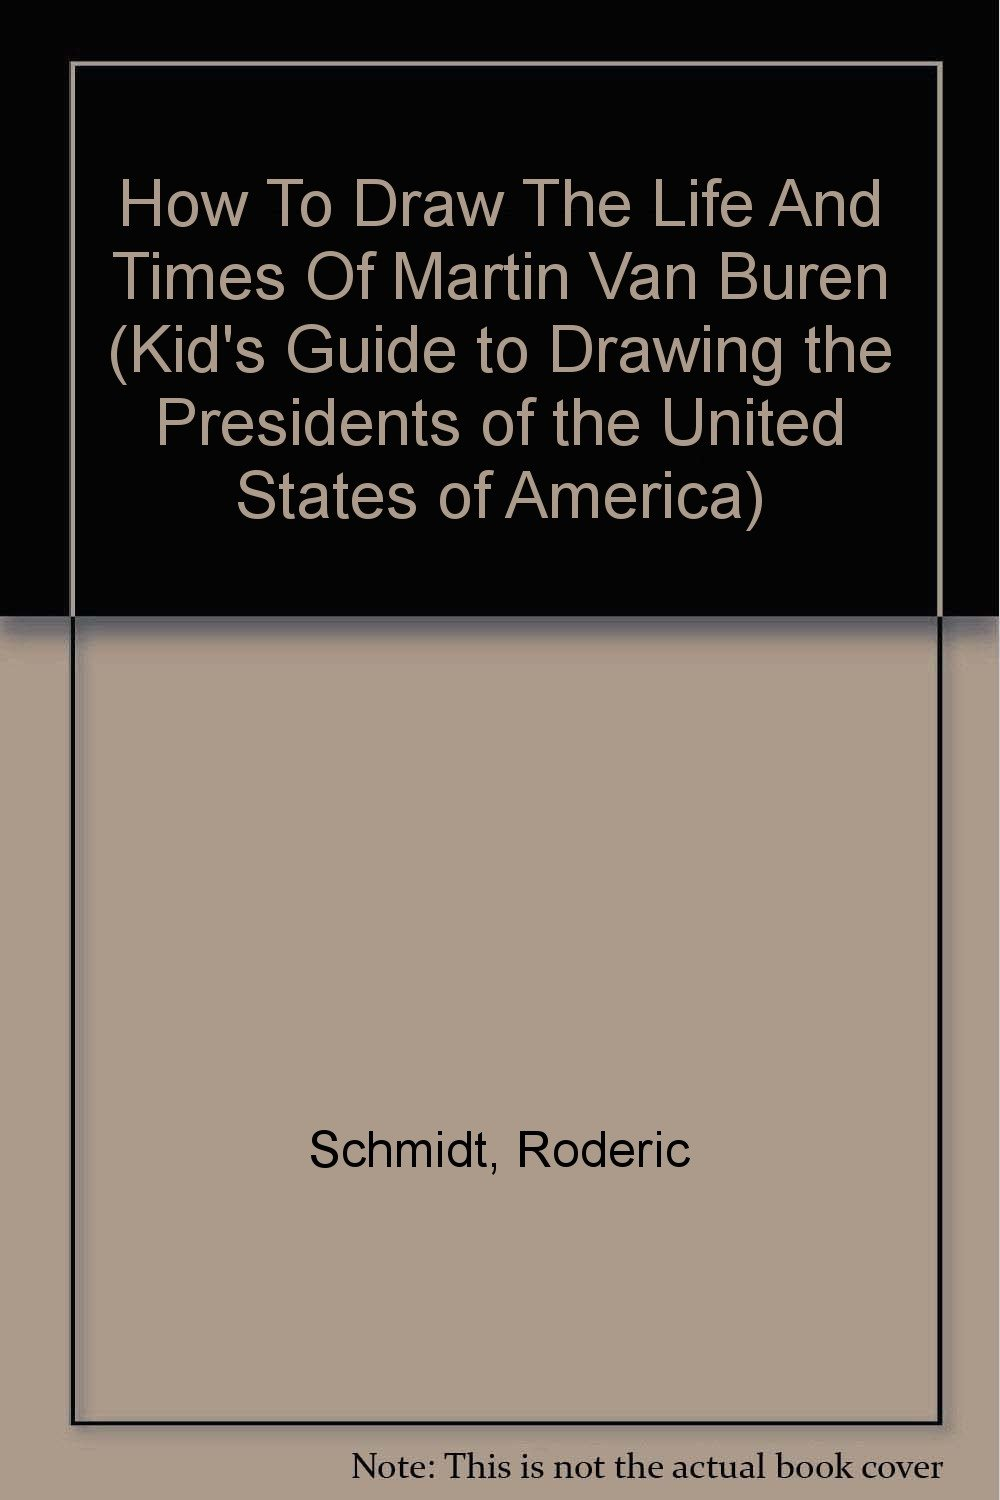 Read Online How To Draw The Life And Times Of Martin Van Buren (Kid's Guide to Drawing the Presidents of the United States of America) pdf